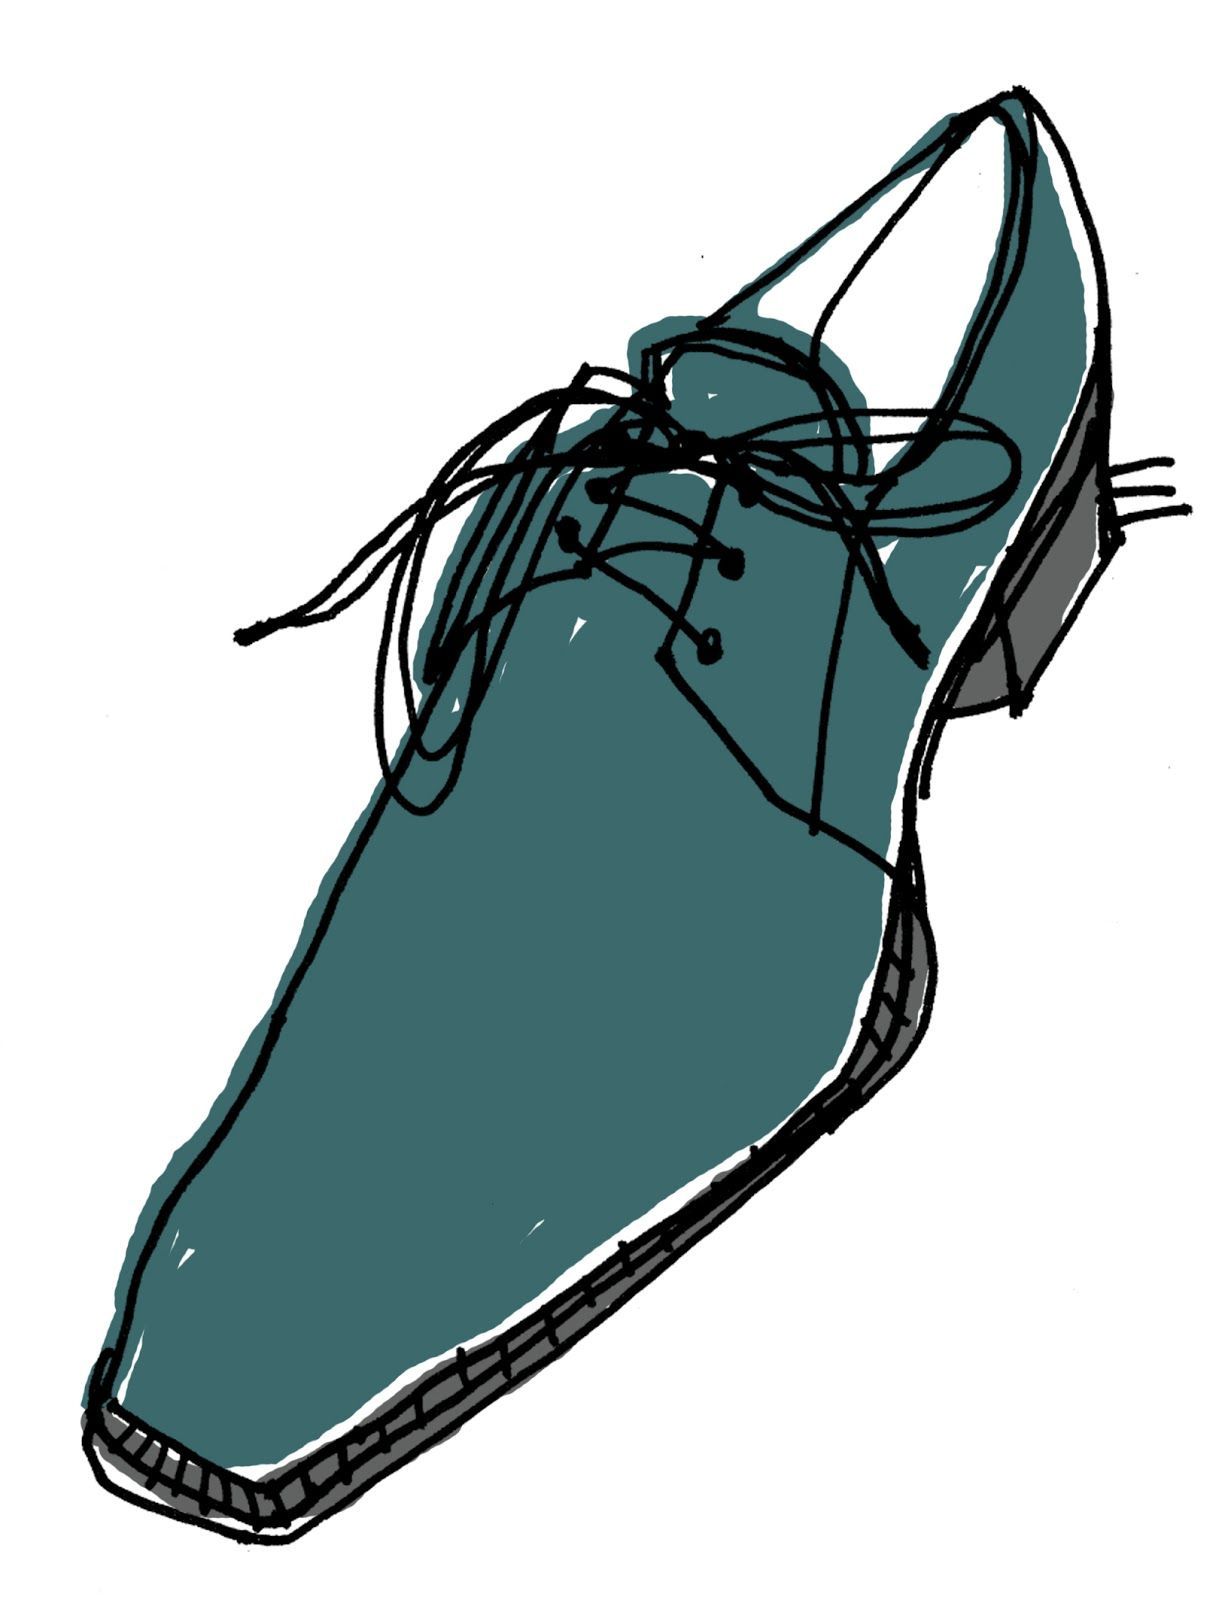 1228x1600 Though Not A Technical Sketch By Most Means, This Dress Shoe Is